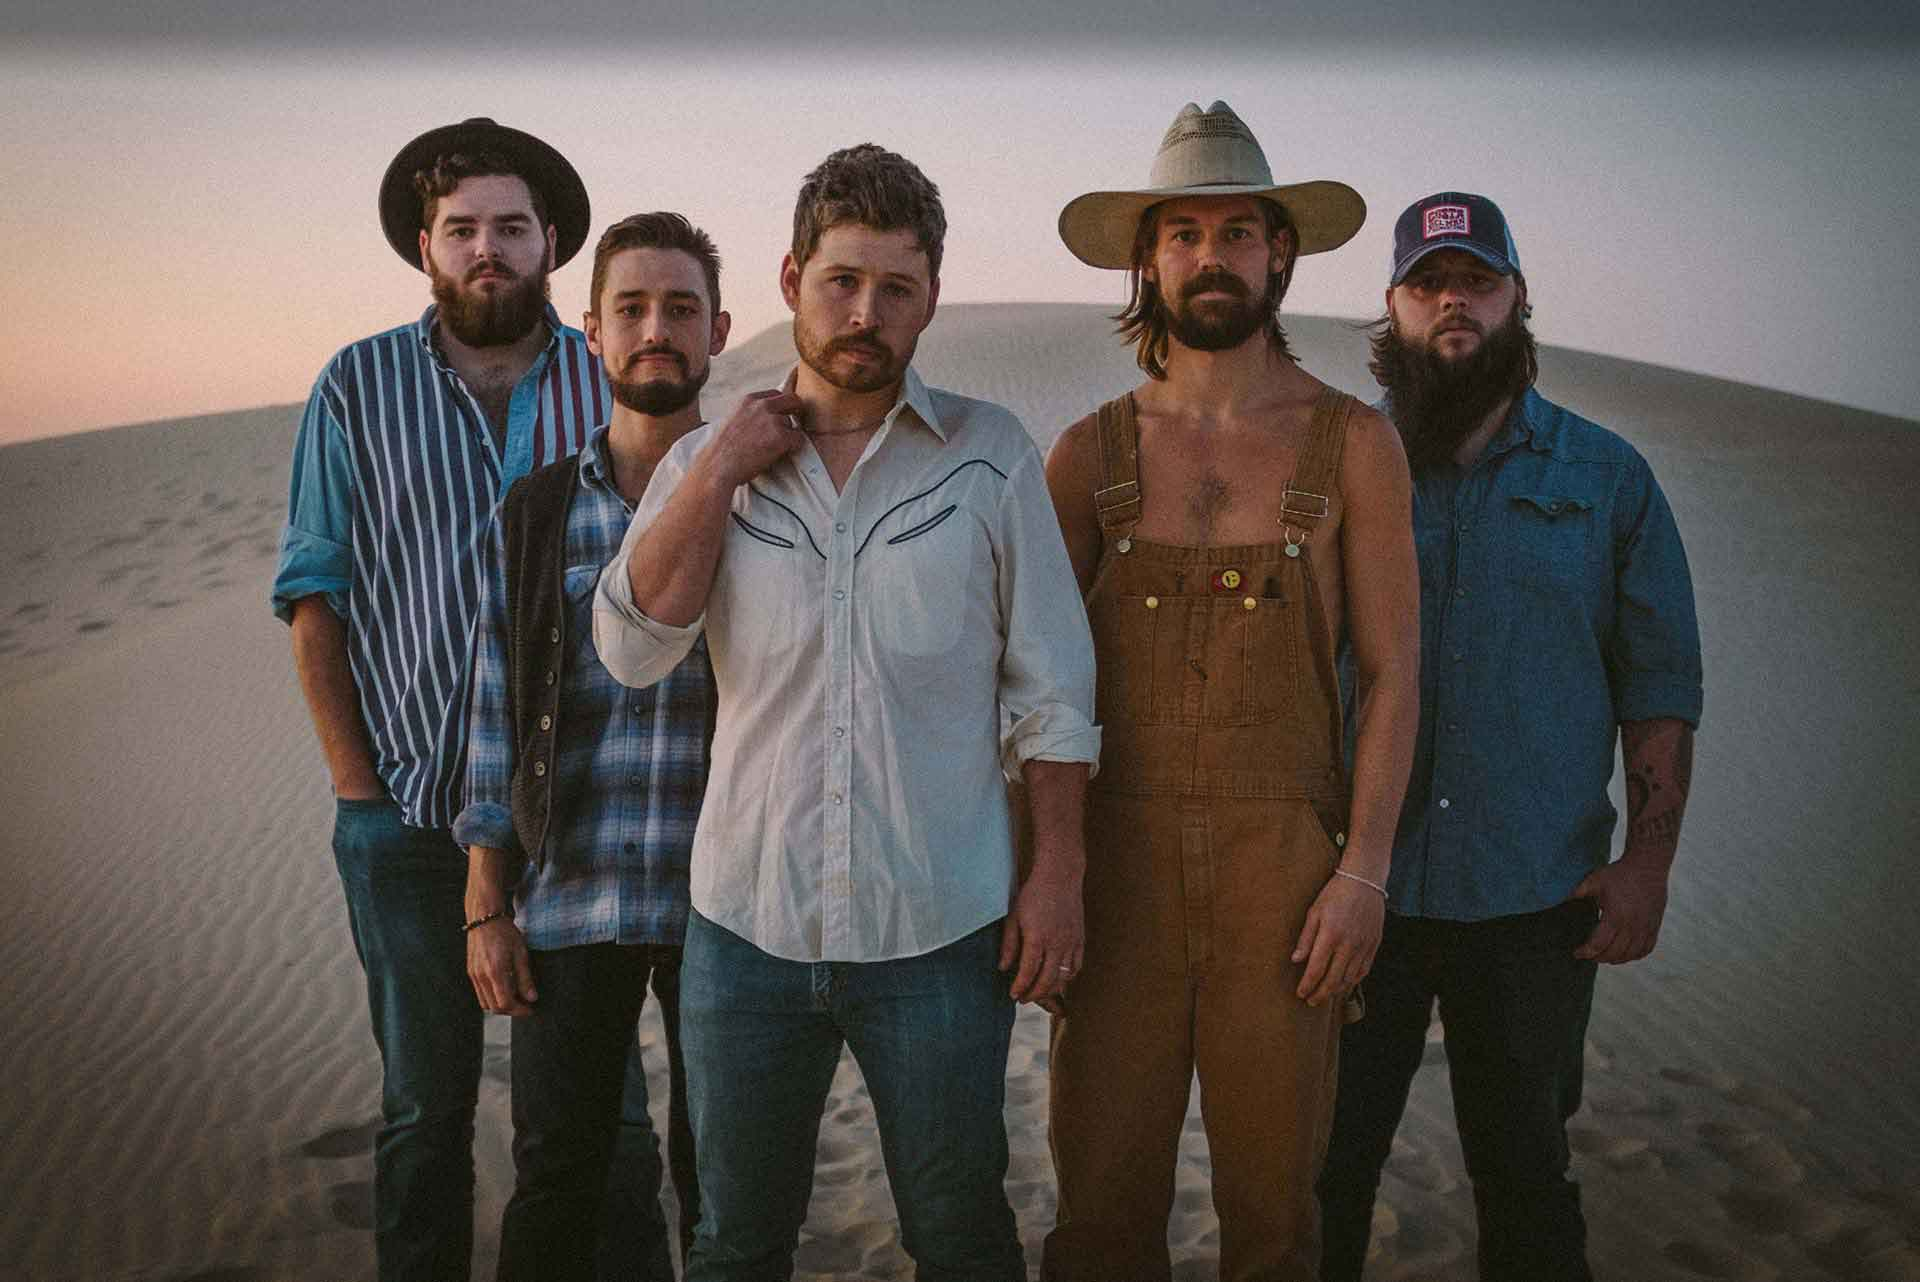 GJ get ready for a great night of live music with Shane Smith & the Saints with special guest Kimberly Dunn! These guys know how to get hit that note that smooths your soul, your feet start movin, hands clappin kind of Texas Music. Comin all the way from Austin, TX let's show them a little western CO hospitality!